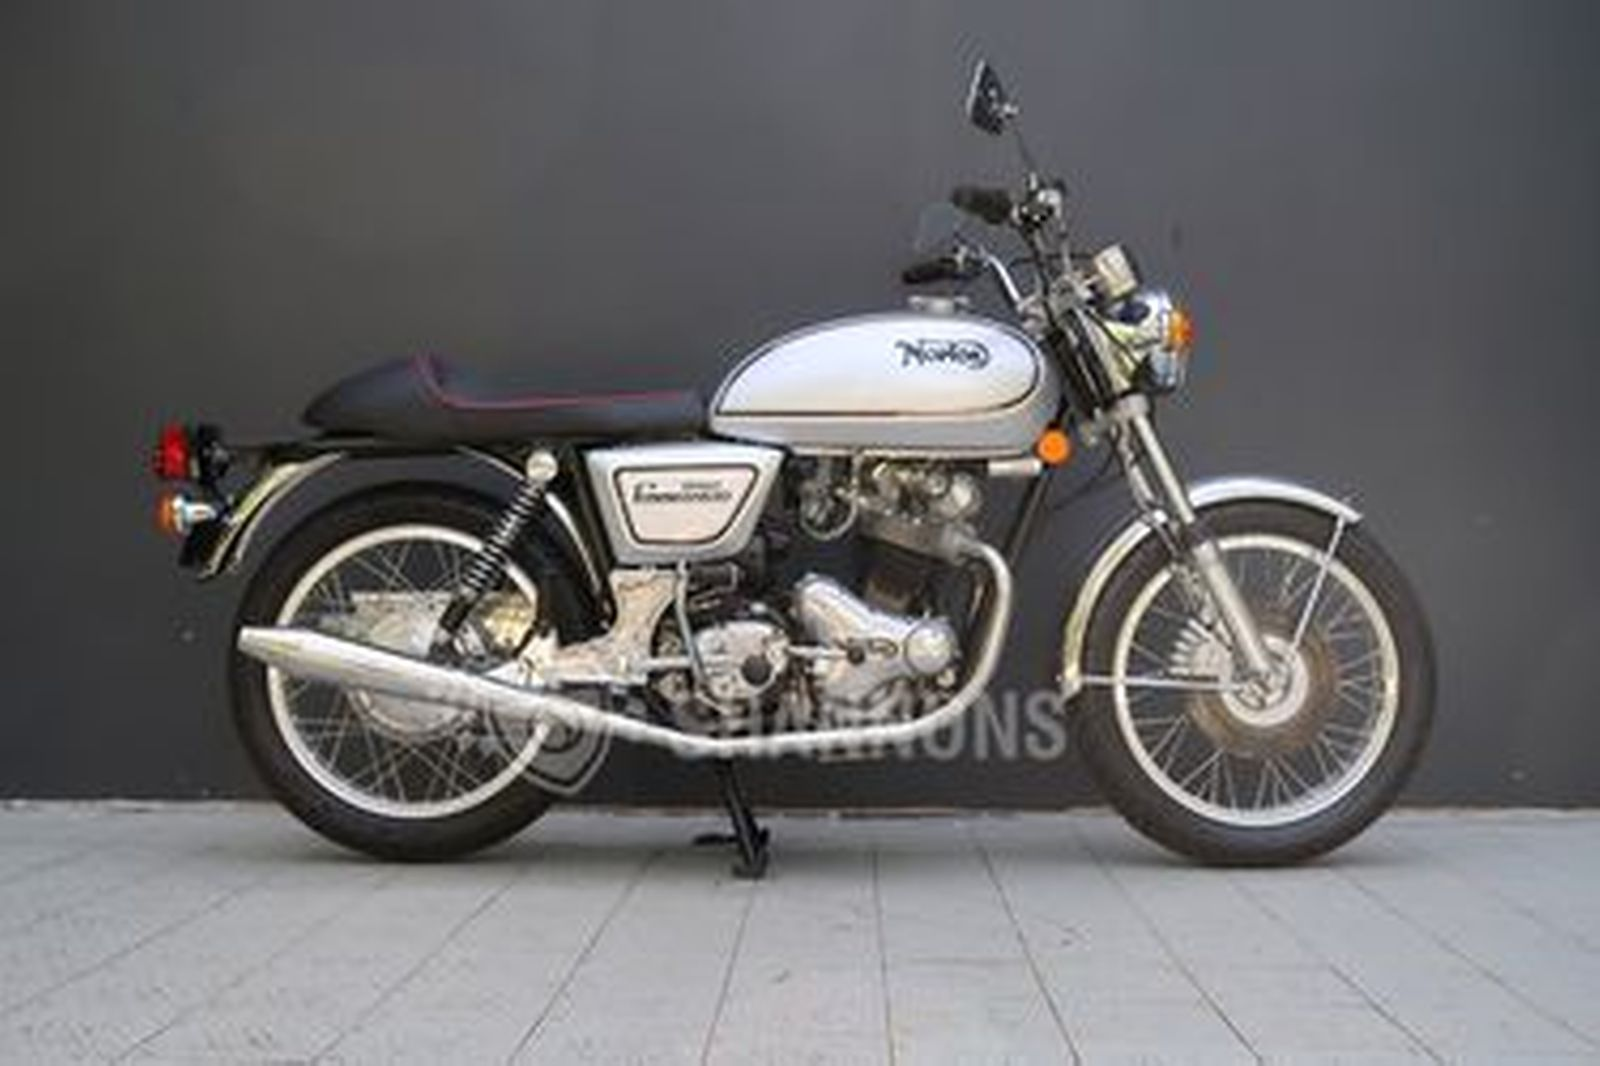 Norton 850 Commando Interstate Motorcycle